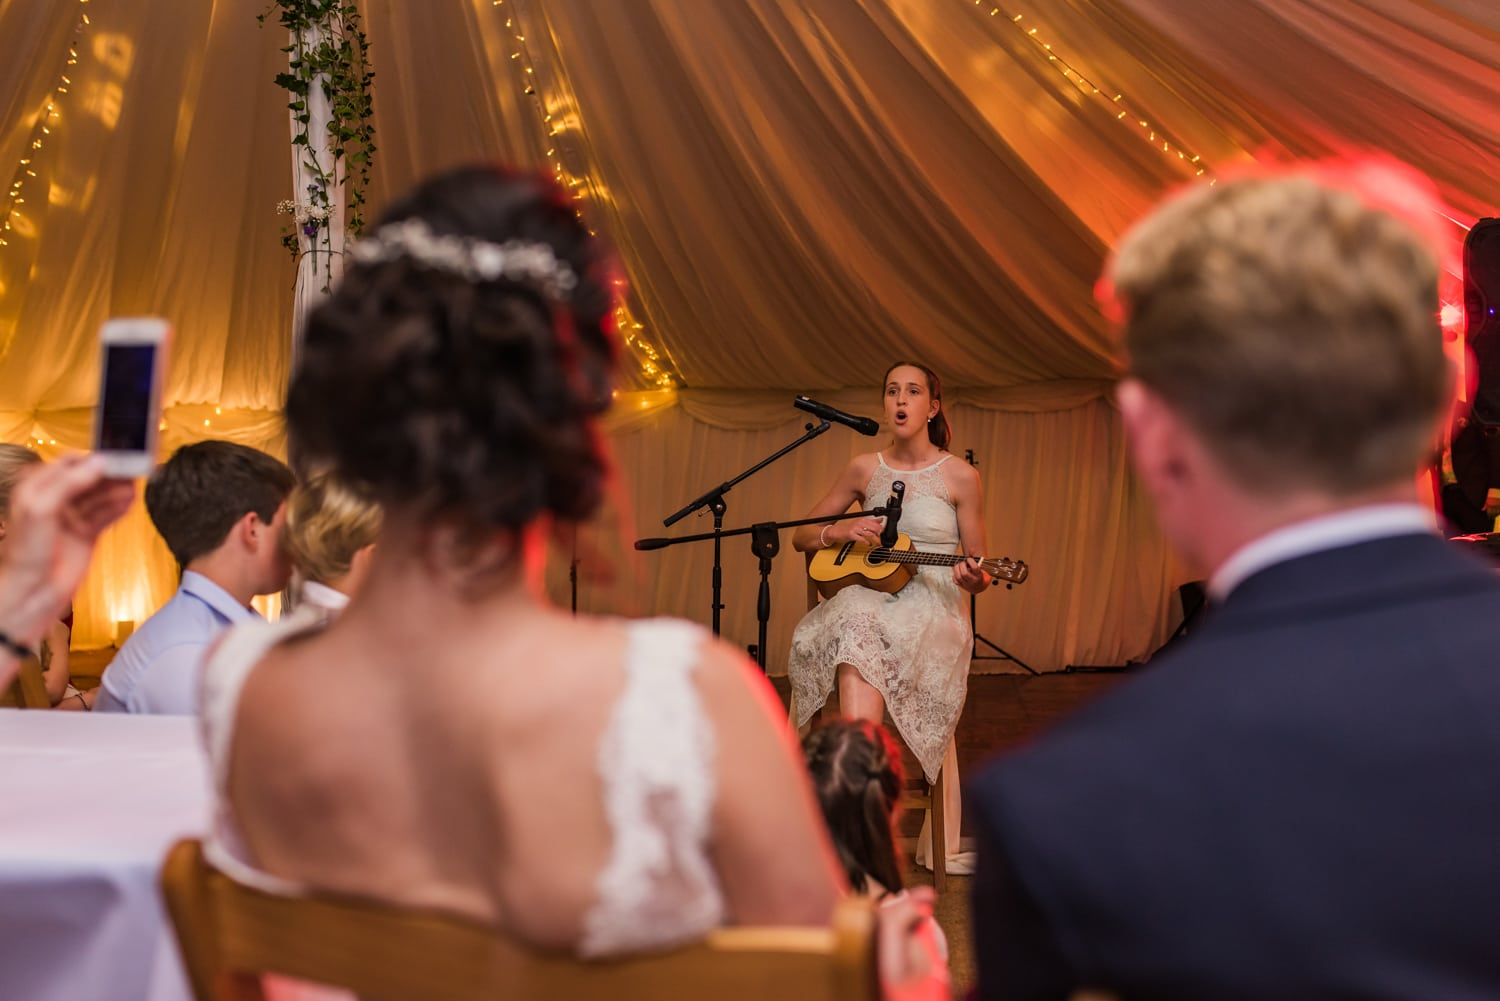 112-wedding-guest-singing.jpg